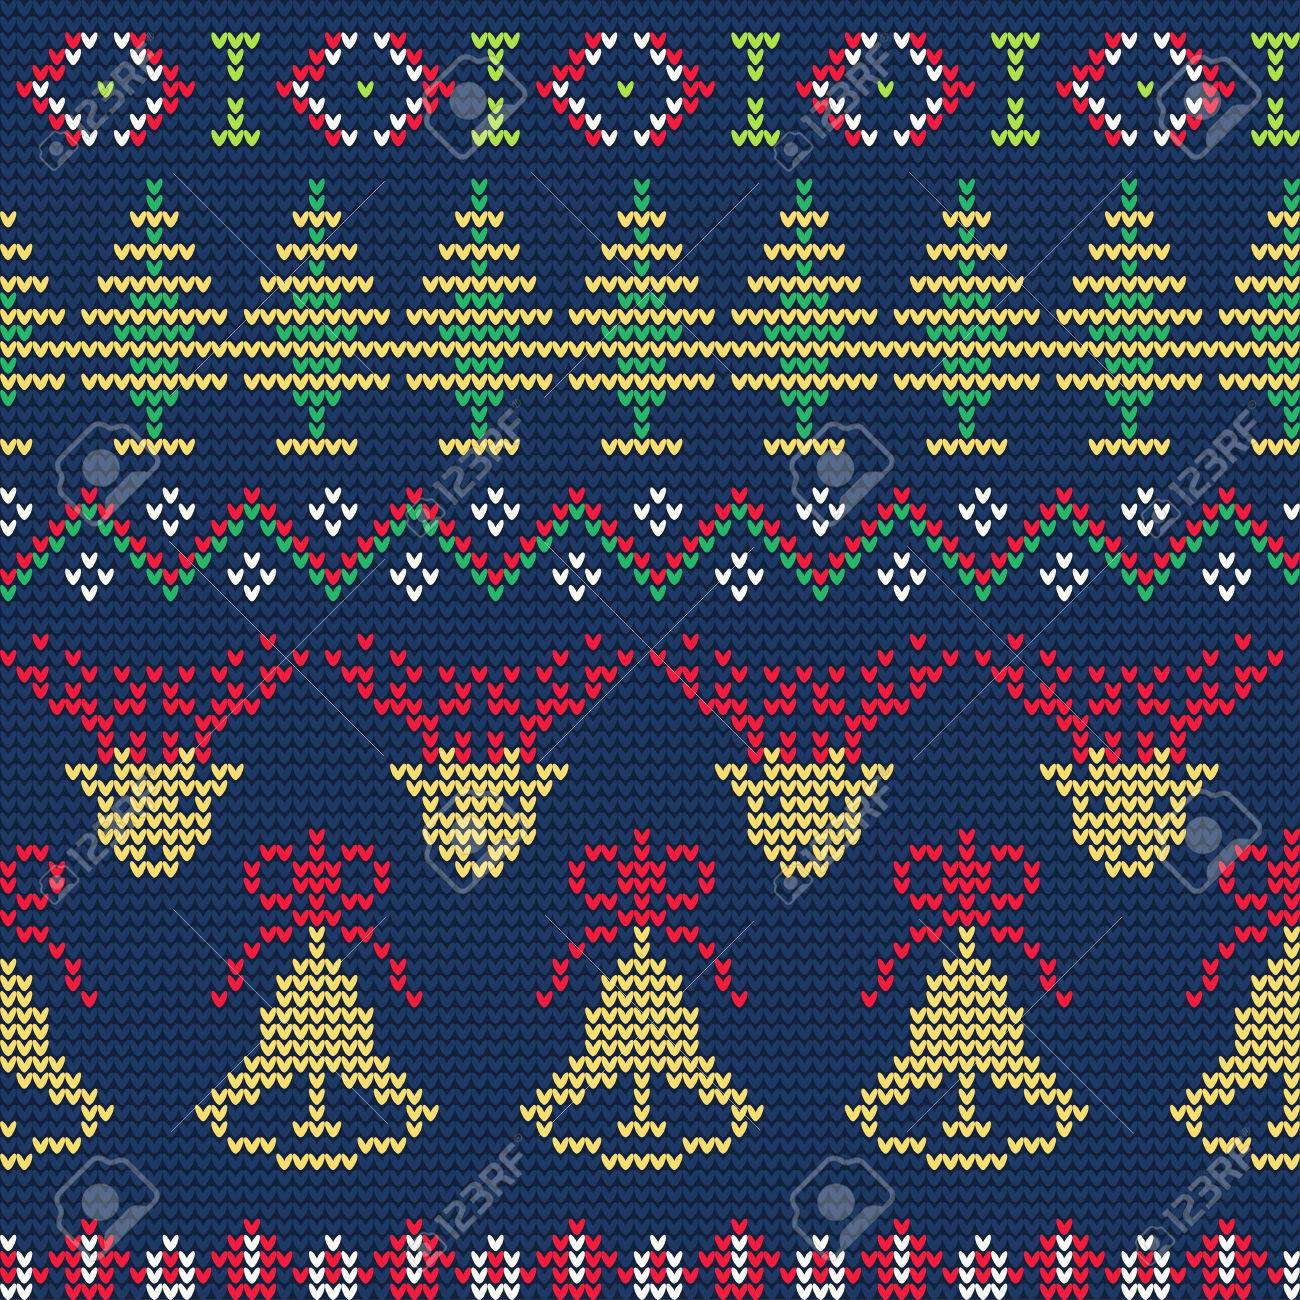 Vector Illustration Of Ugly Sweater Seamless Pattern For Design Royalty Free Cliparts Vectors And Stock Illustration Image 67752867,Bezalel Academy Of Arts And Design Jerusalem